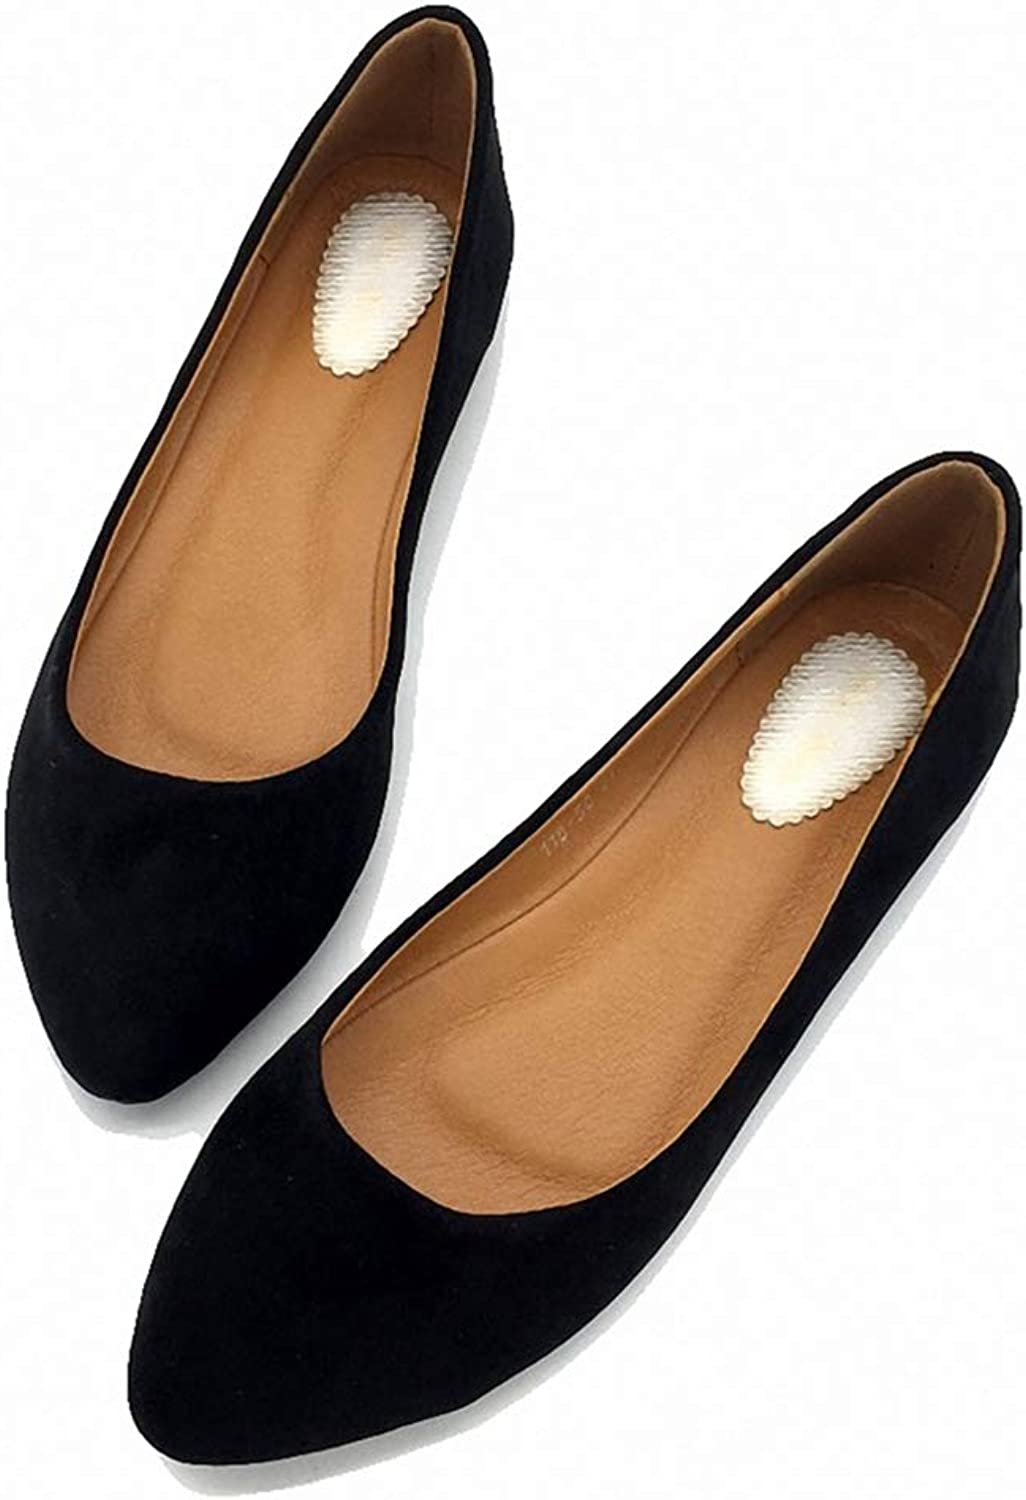 Kyle Walsh Pa Women Ballet Flats shoes Ladies Casual Slip-on Comfortable Footwear Moccasins